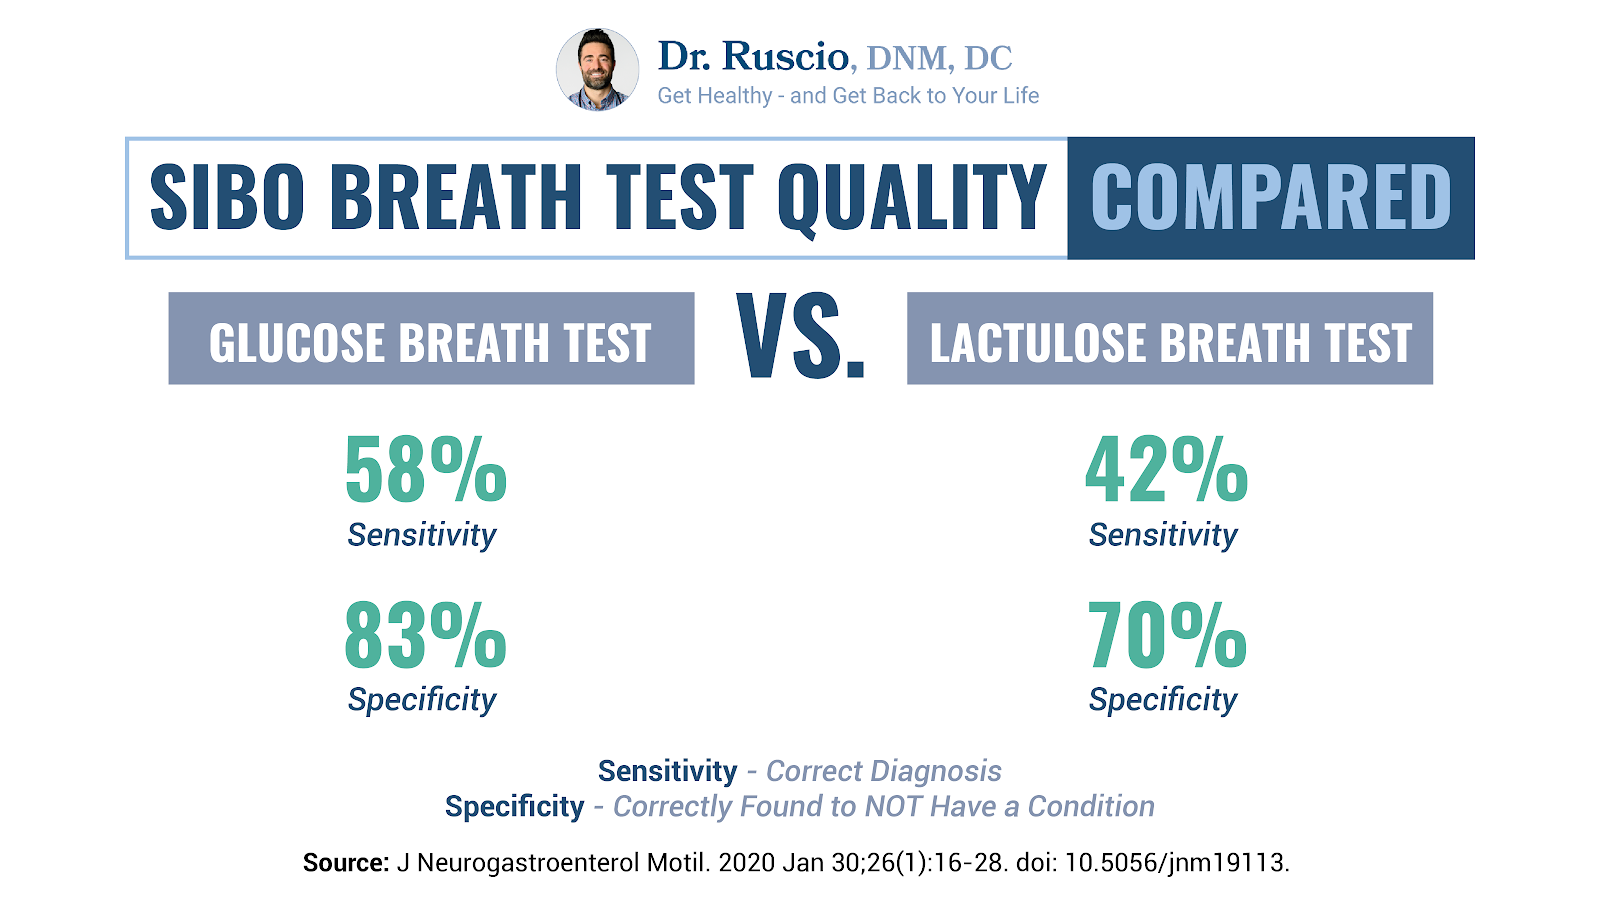 Comparison of two types of SIBO breath tests according to sensitivity and specificity